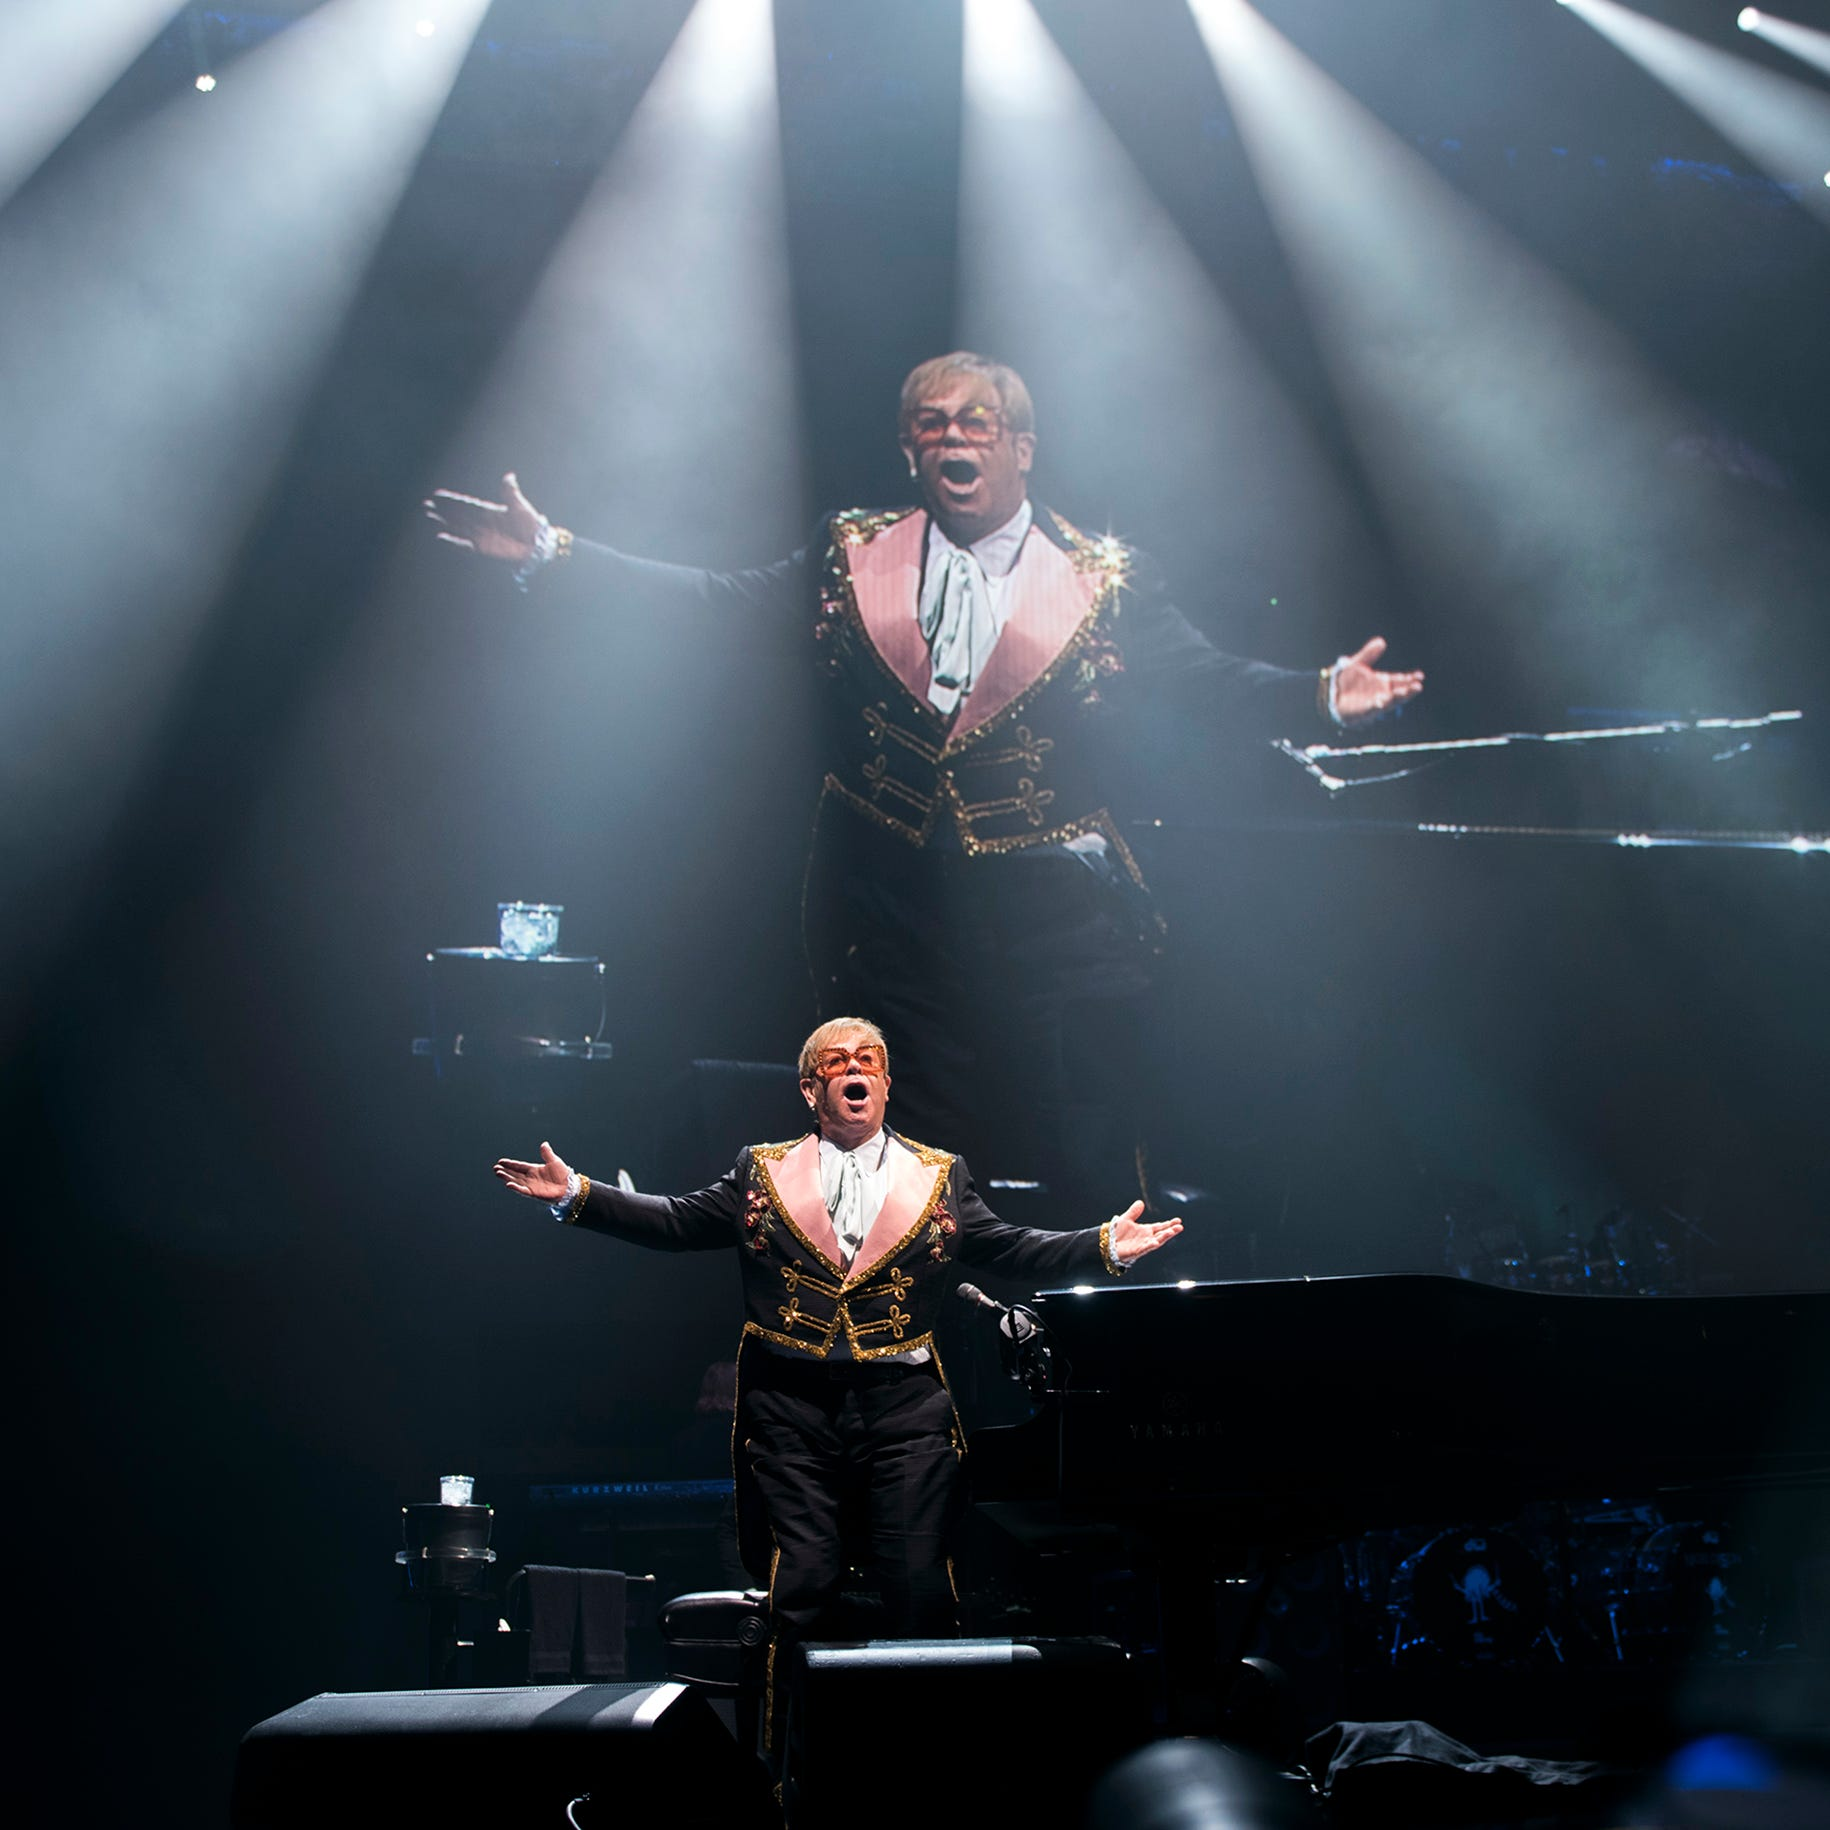 Elton John farewell tour setlist: 5 songs we want to hear at Farewell Yellow Brick Road